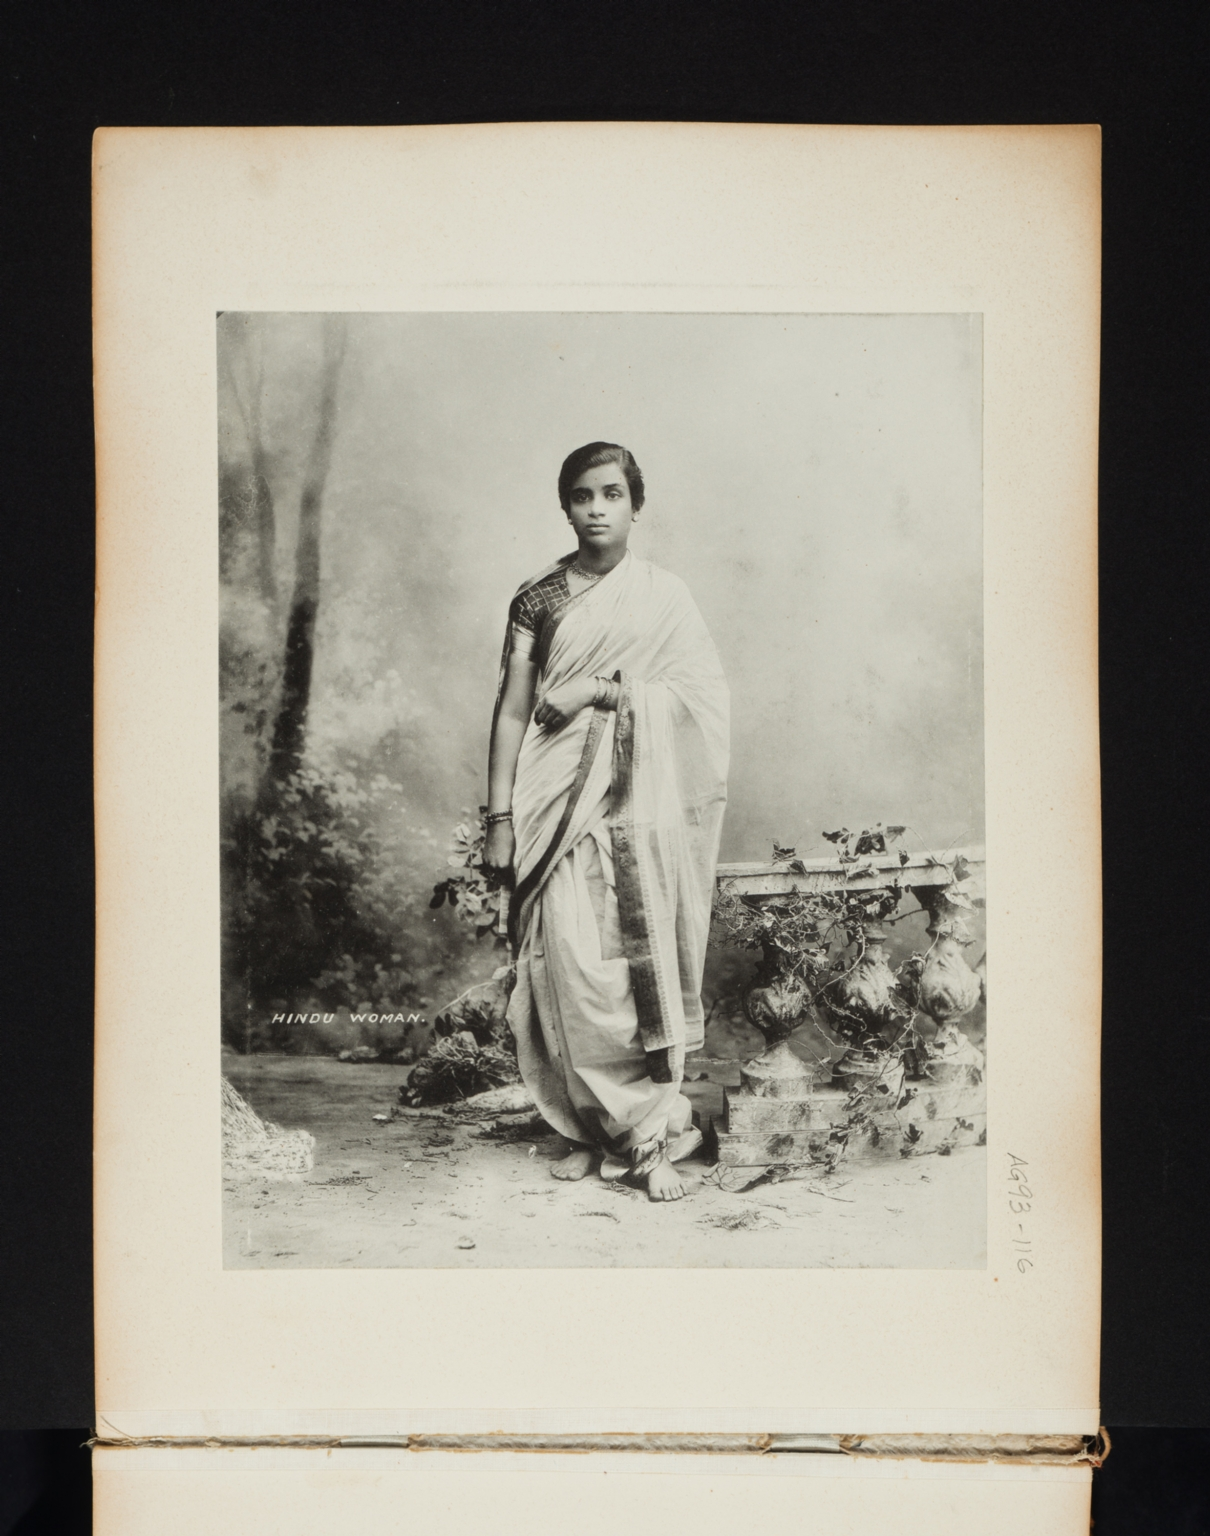 Hindu Woman - India.